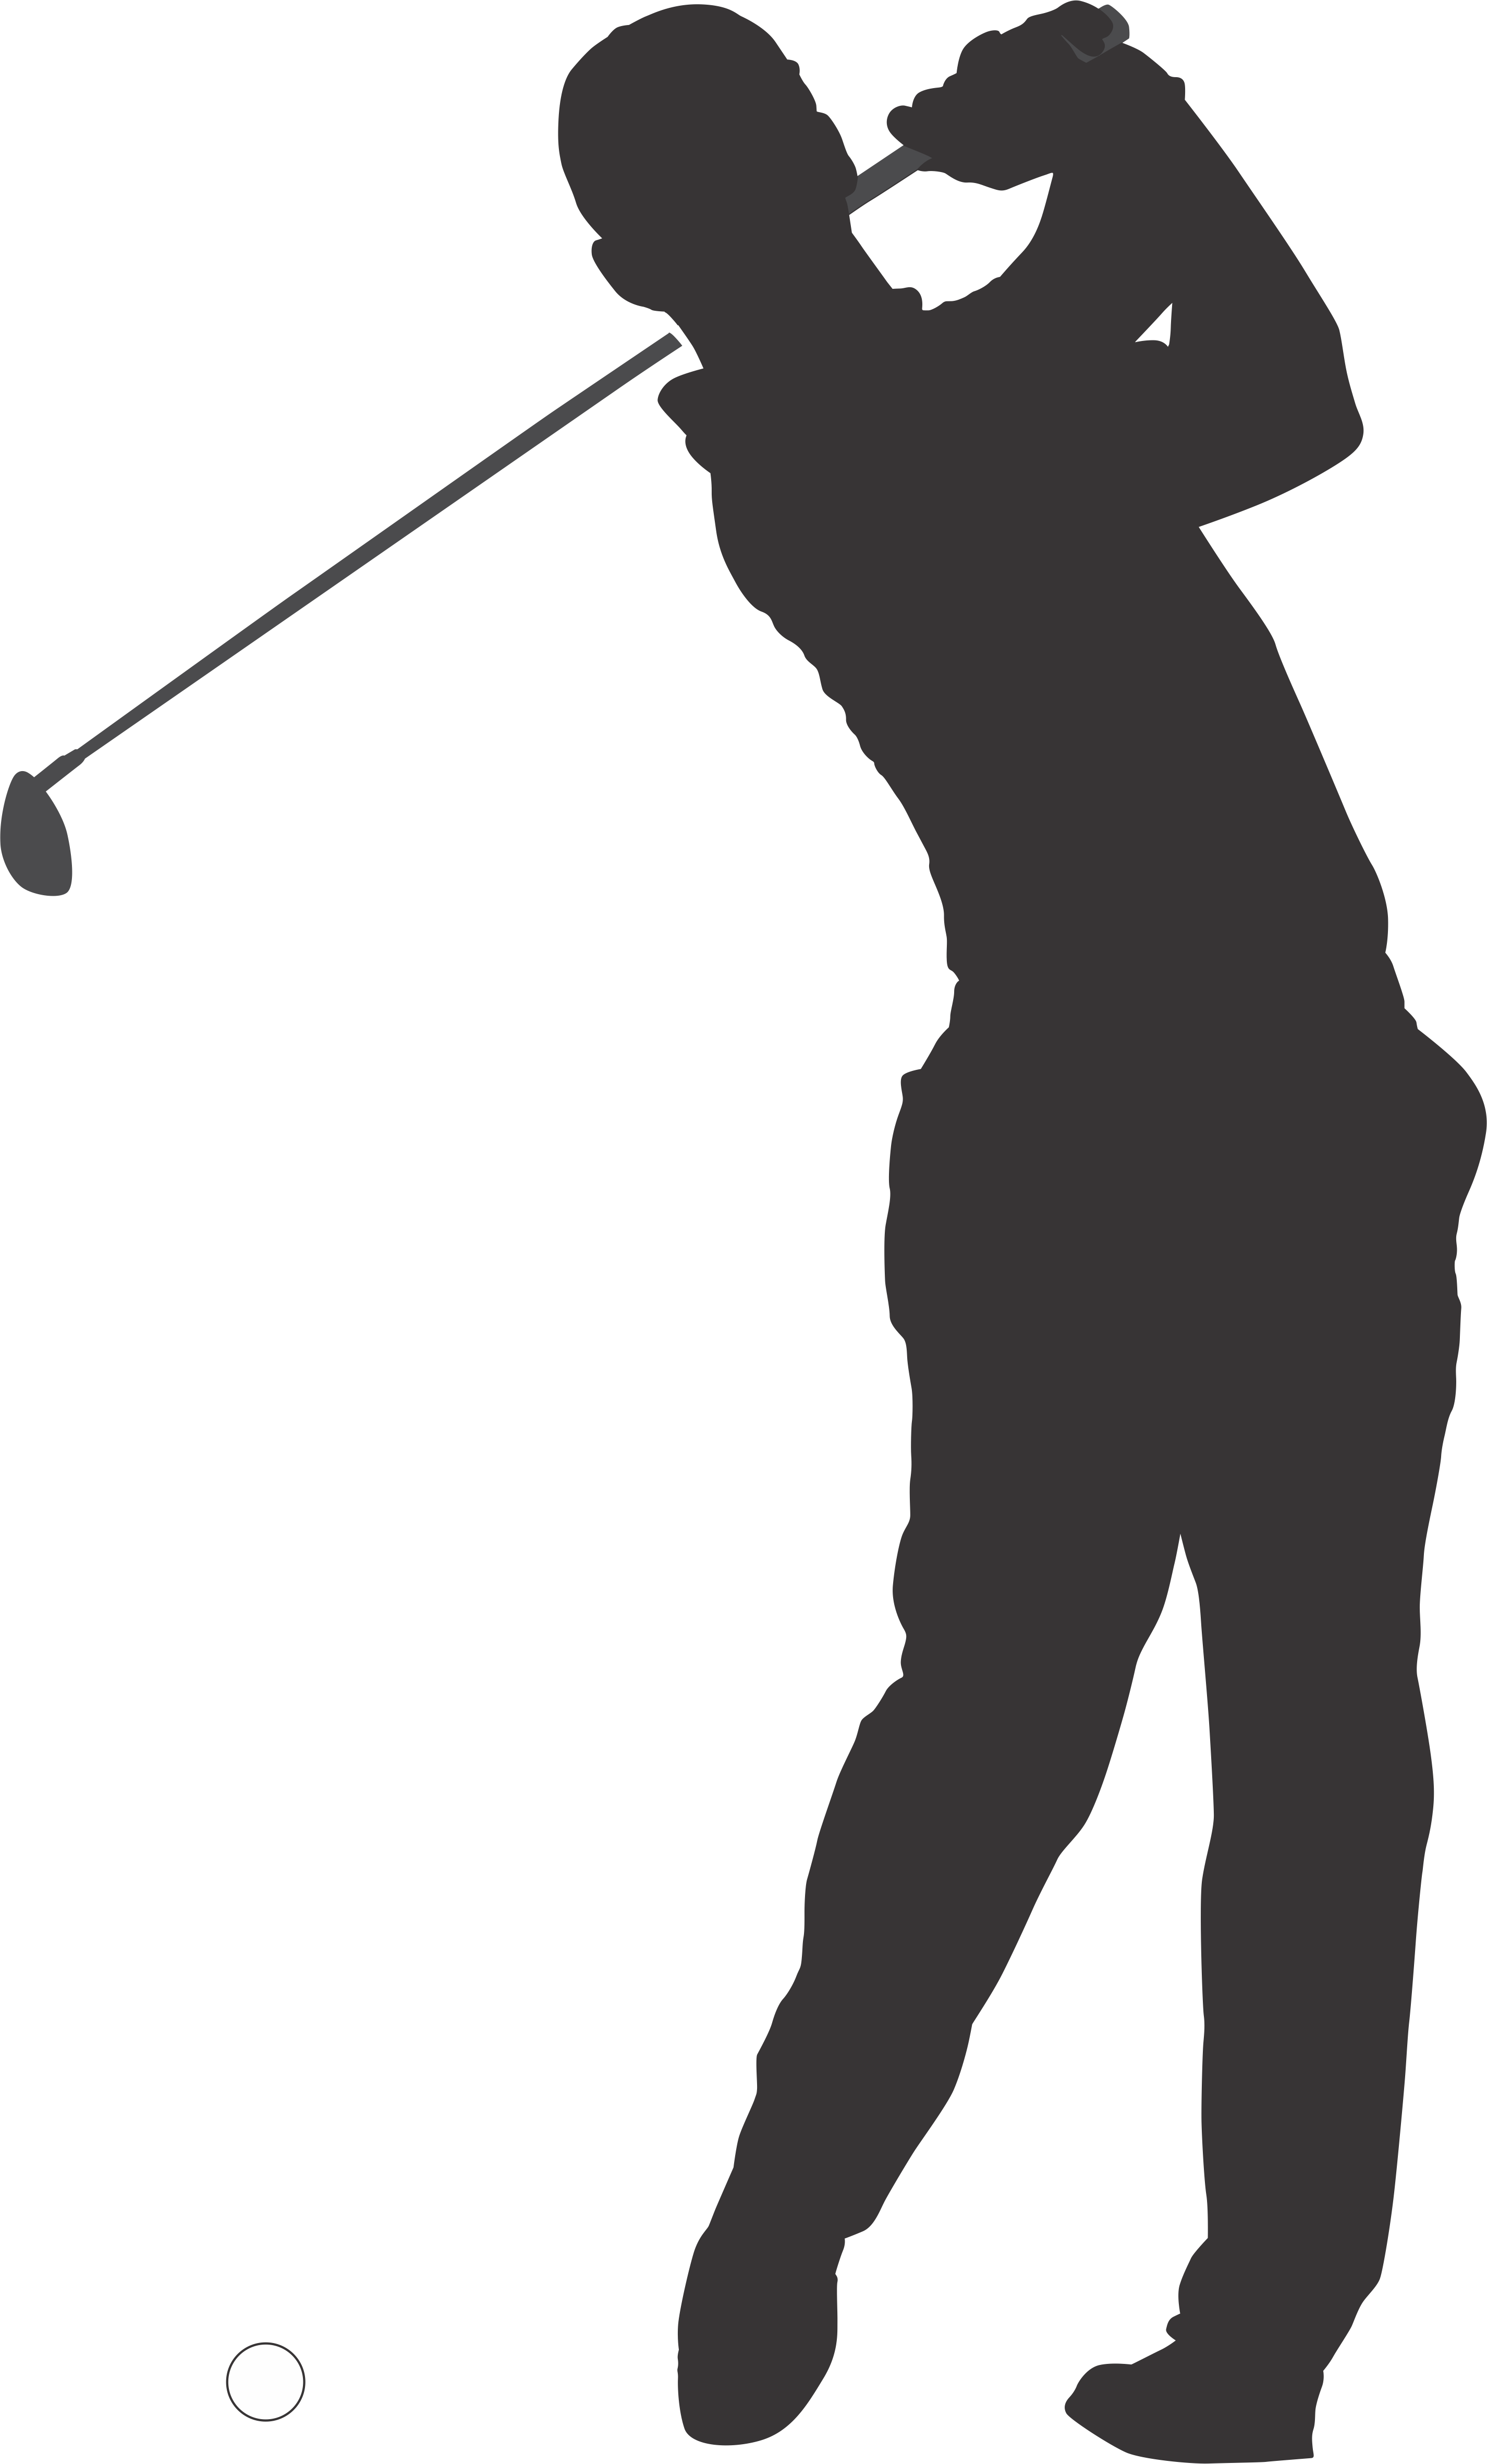 Pitch And Putt Png - Download Golfer - Pitch And Putt PNG Image with No Background ...